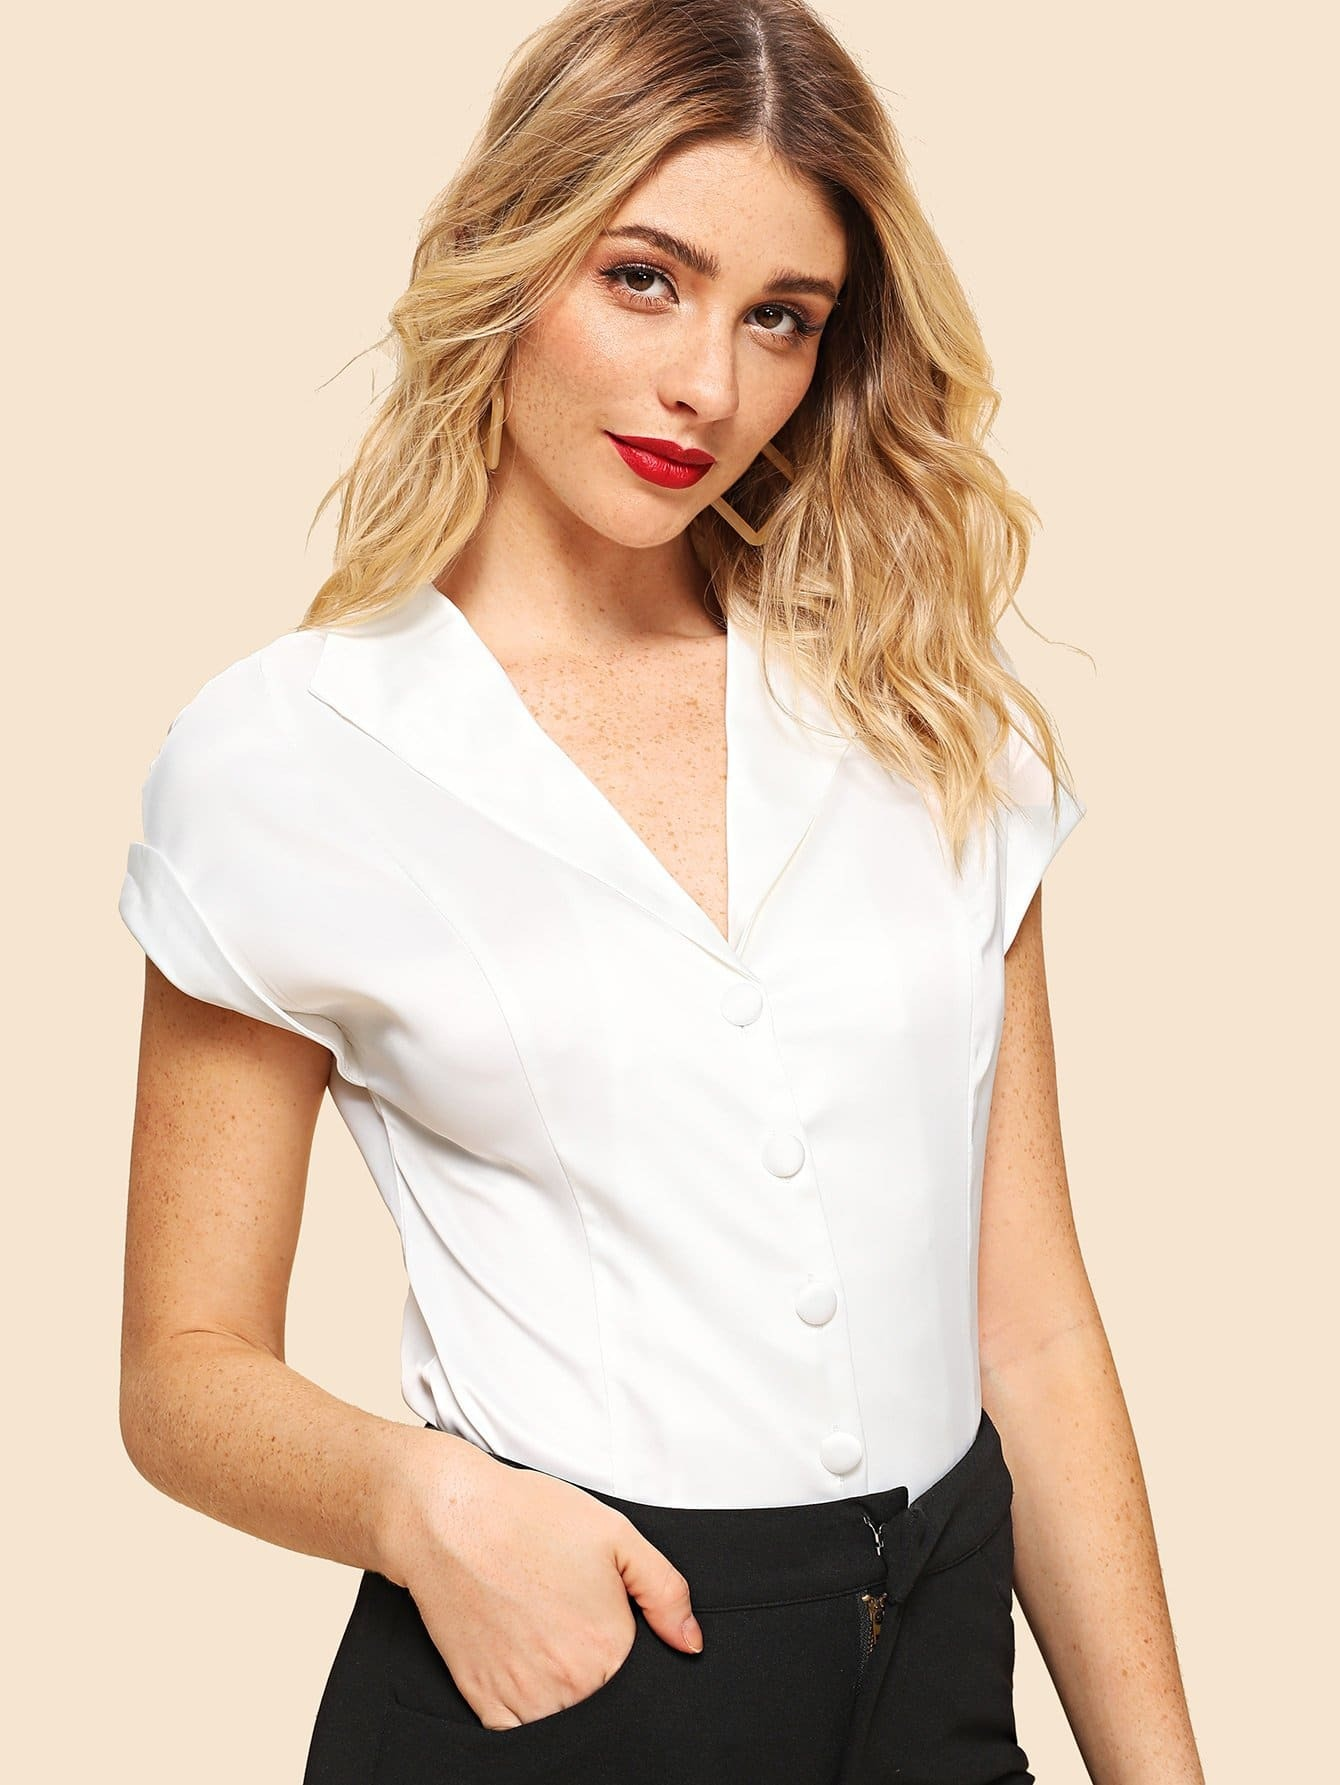 V Neck Roll Up Sleeve Blouse доро пеш frankfurt am main